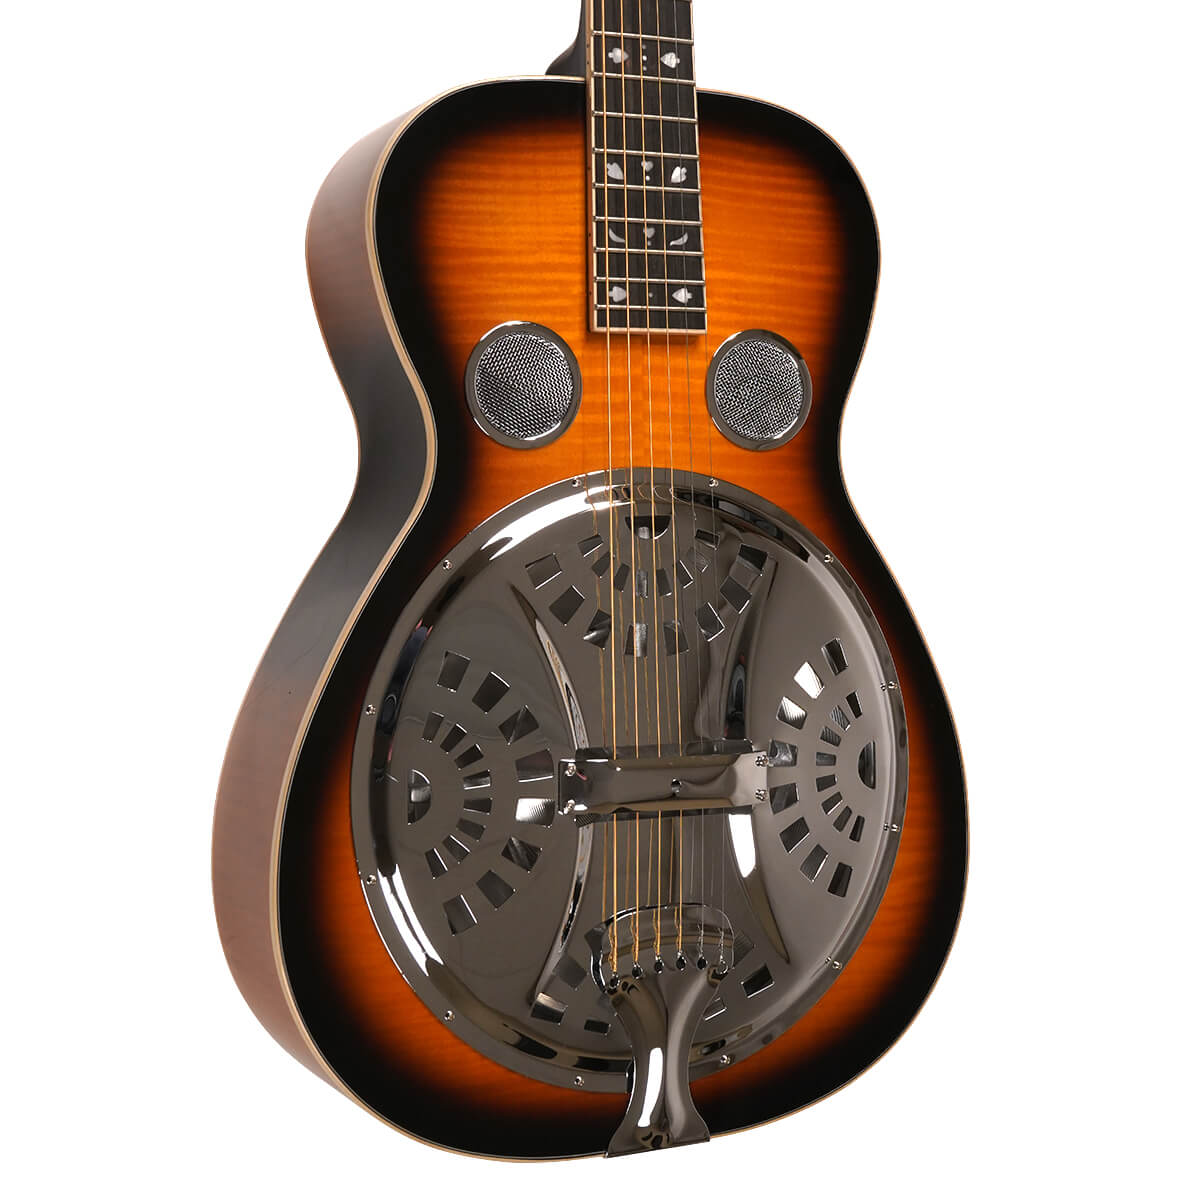 Mastertone™ PBR-D: Paul Beard Signature-Series Roundneck Resonator Guitar Deluxe with Case